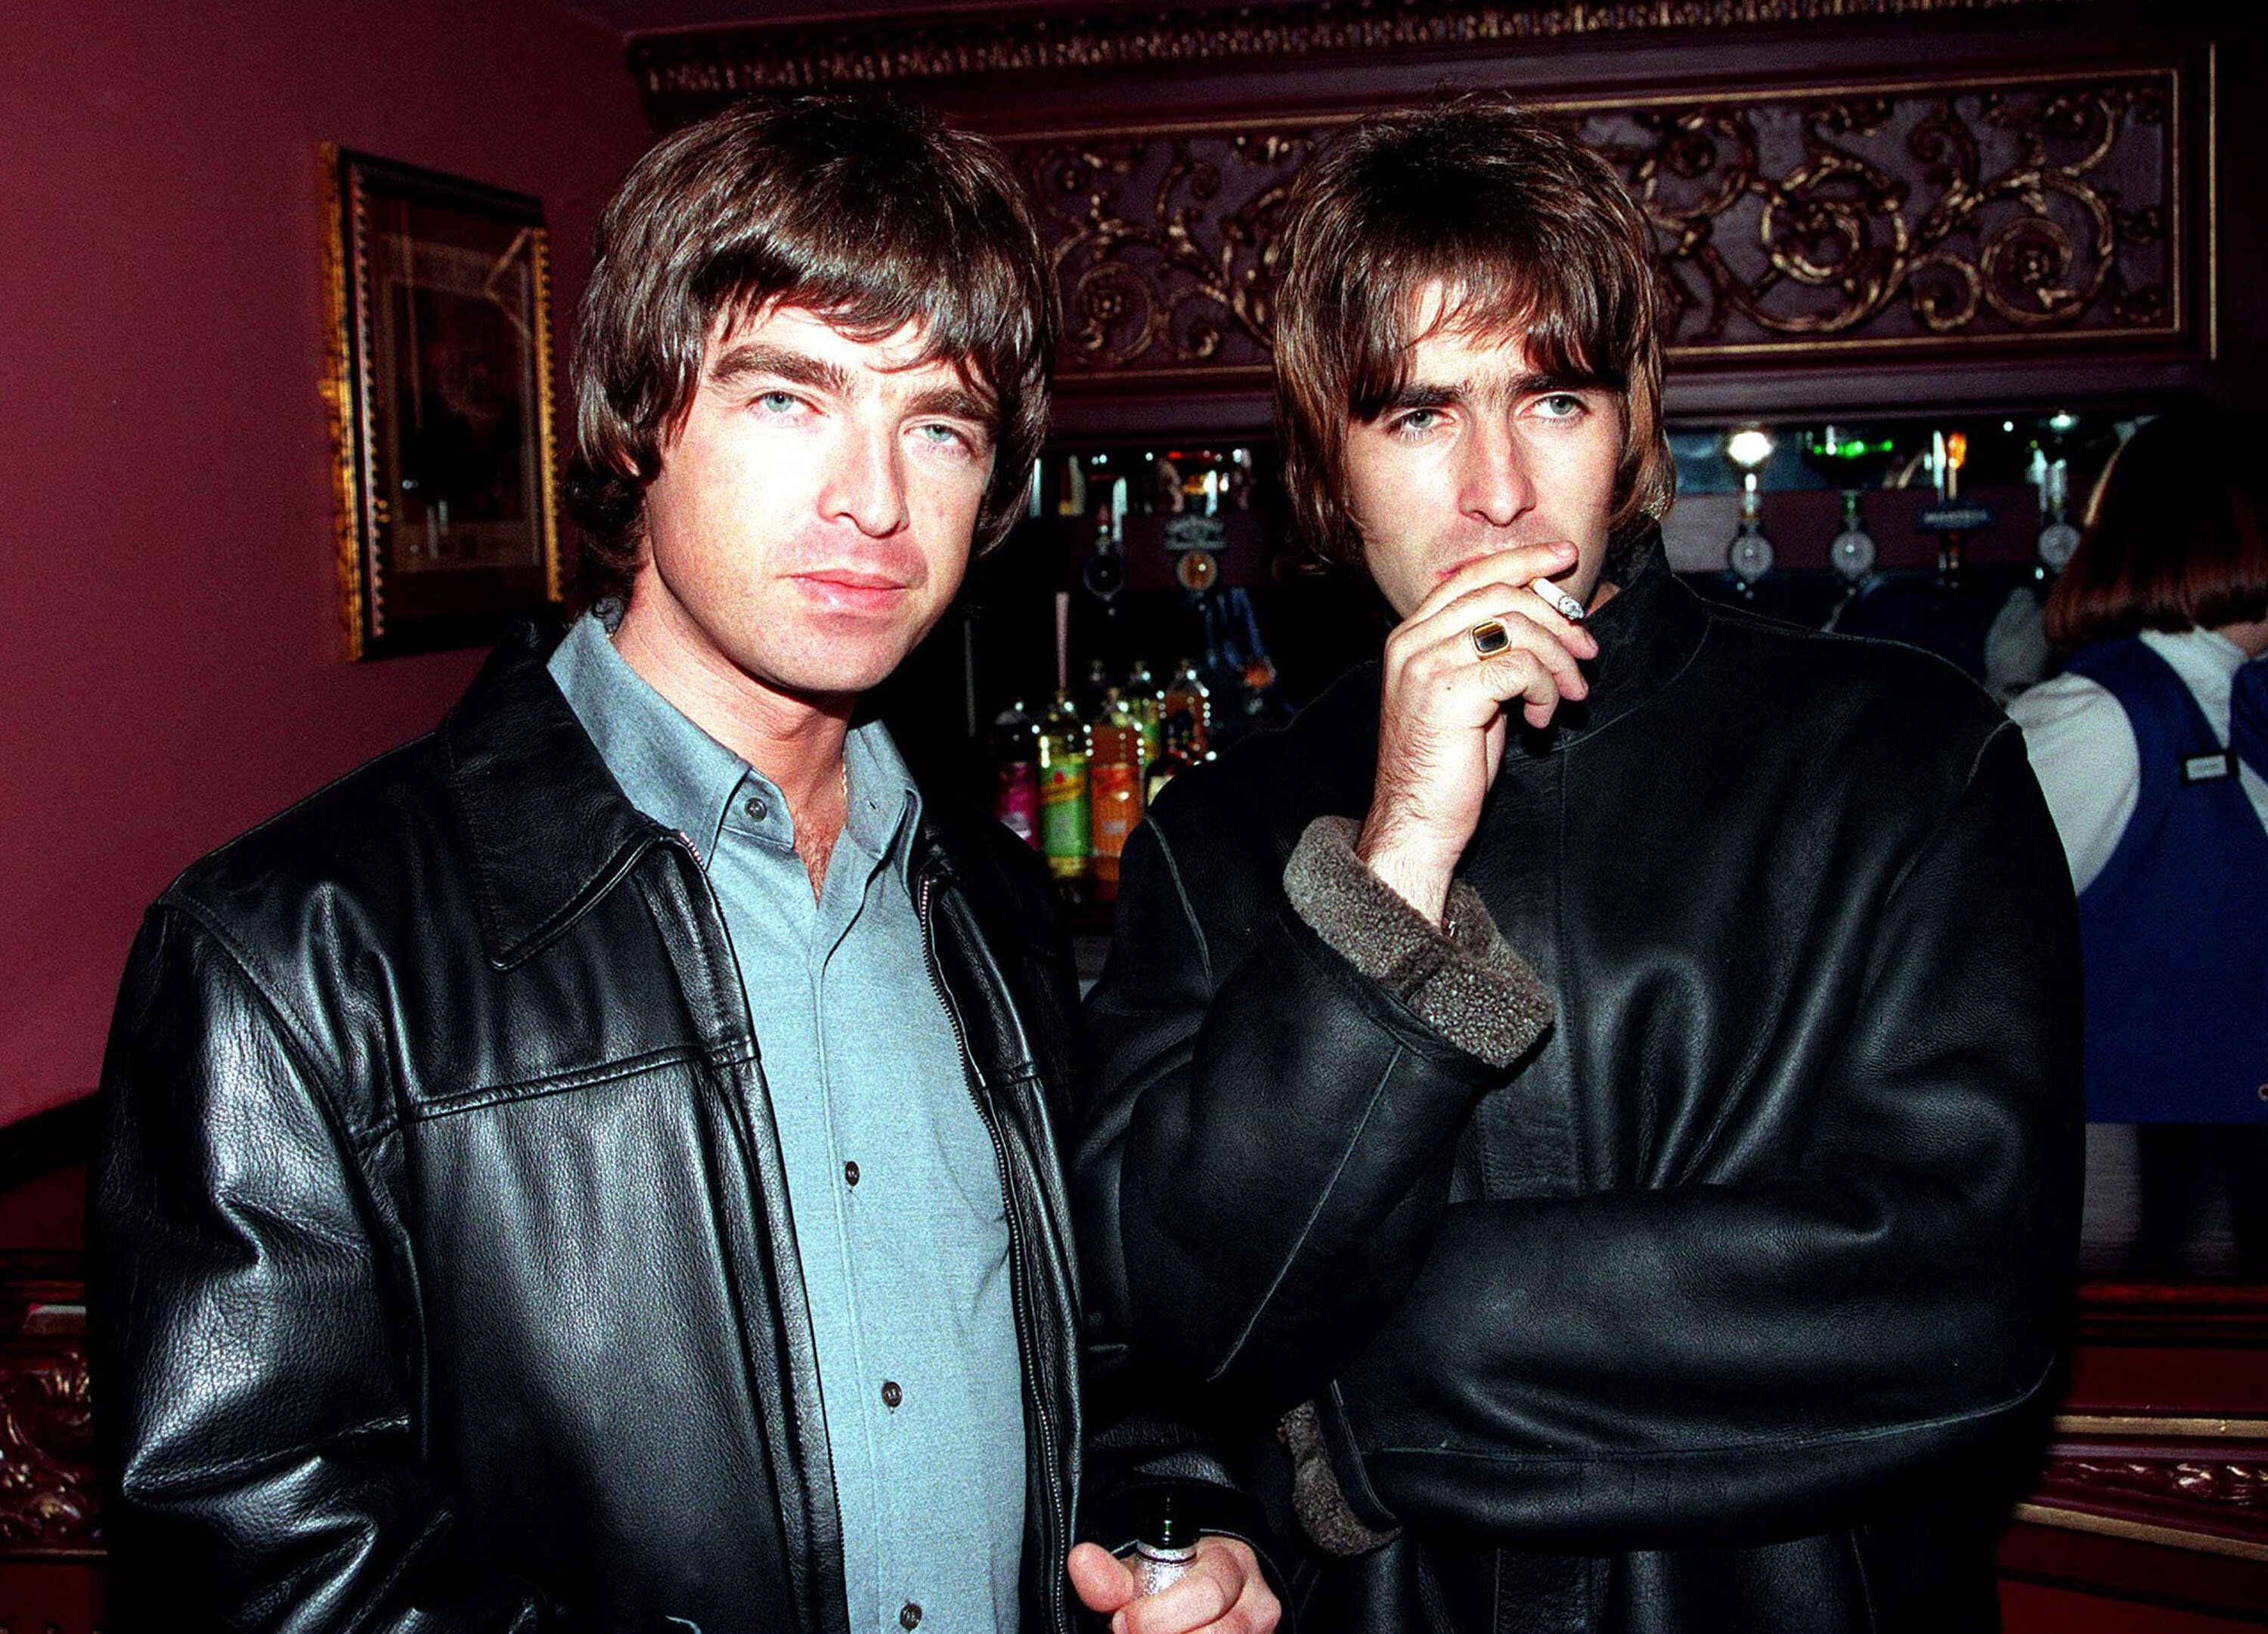 Brothers Liam and Noel Gallagher formed Oasis in Manchester, England, in 1991.